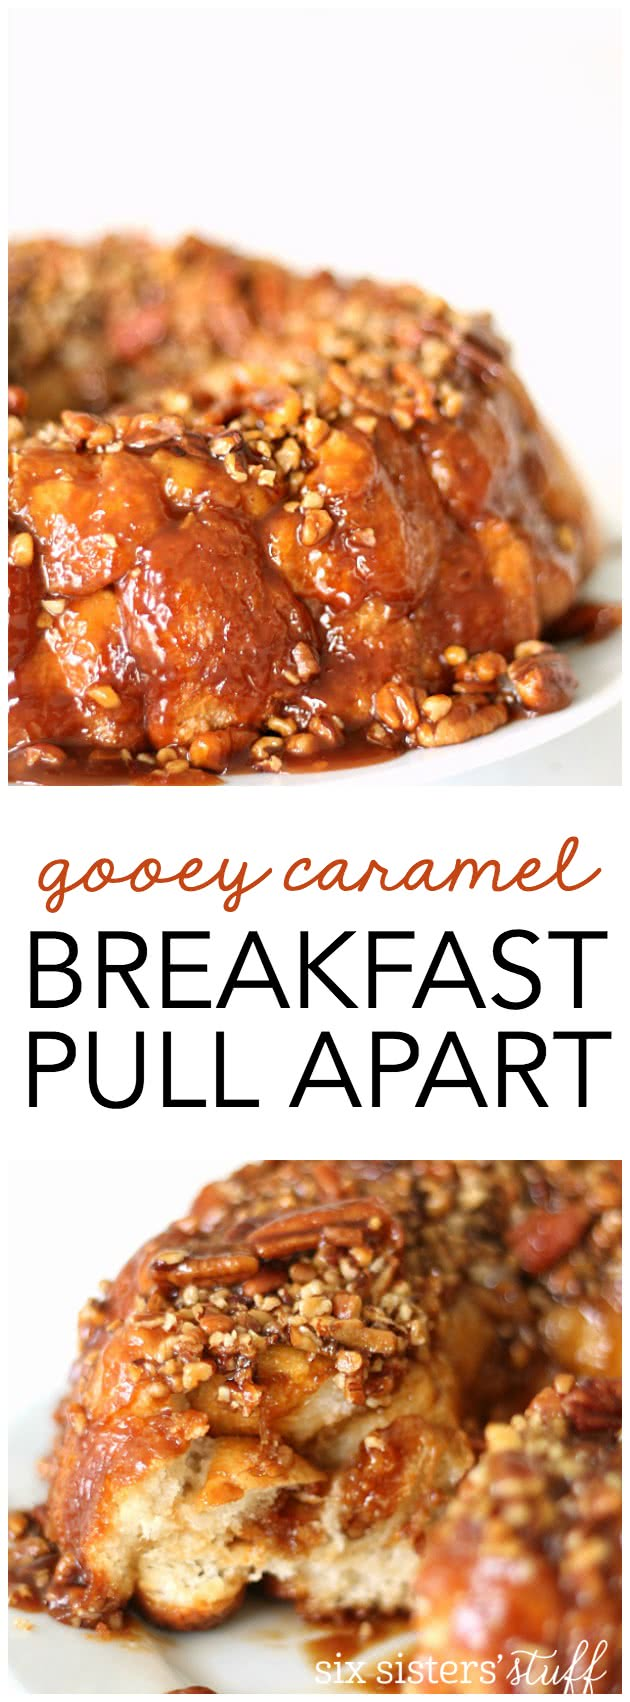 Gooey Caramel Breakfast Pull Apart from SixSistersStuff.com. My family LOVES this!